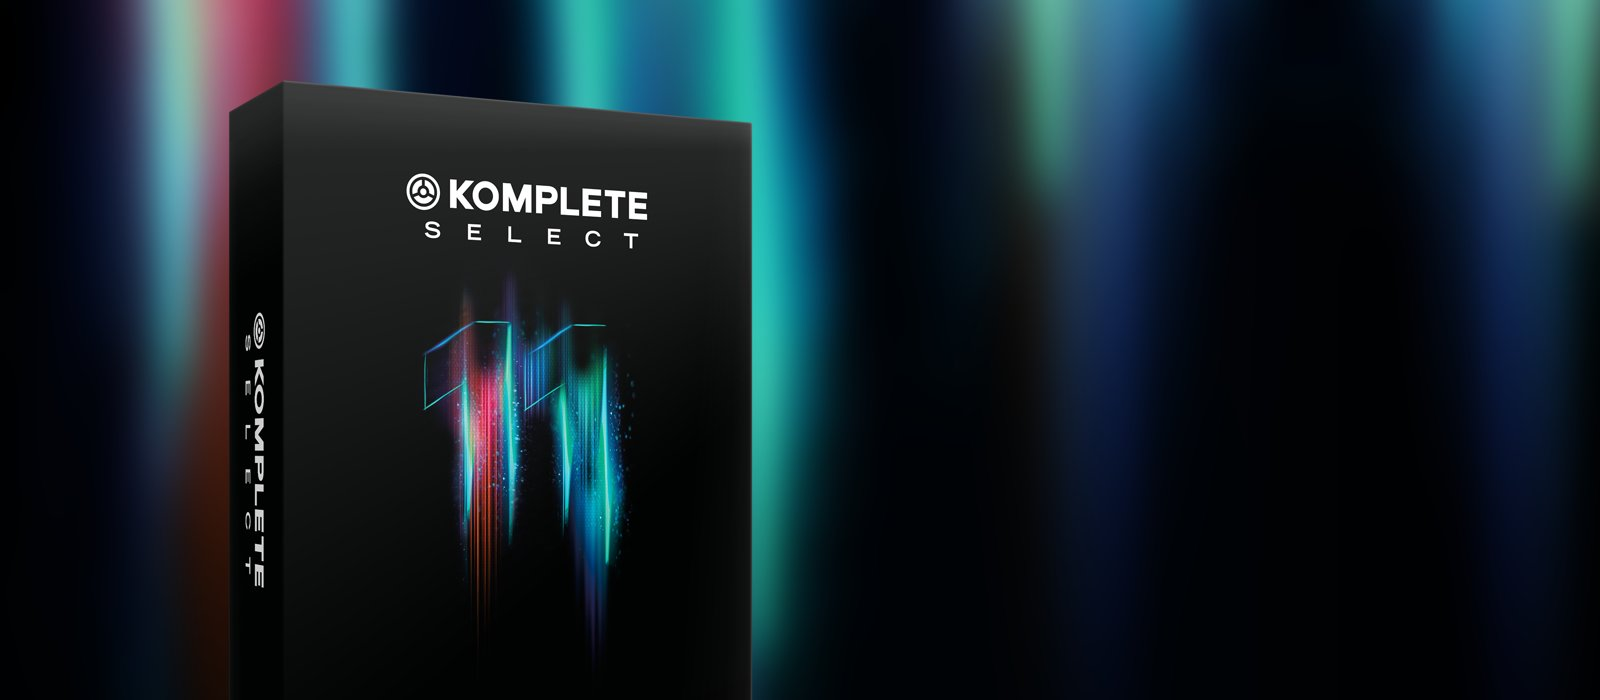 komplete 11 upgrade from select